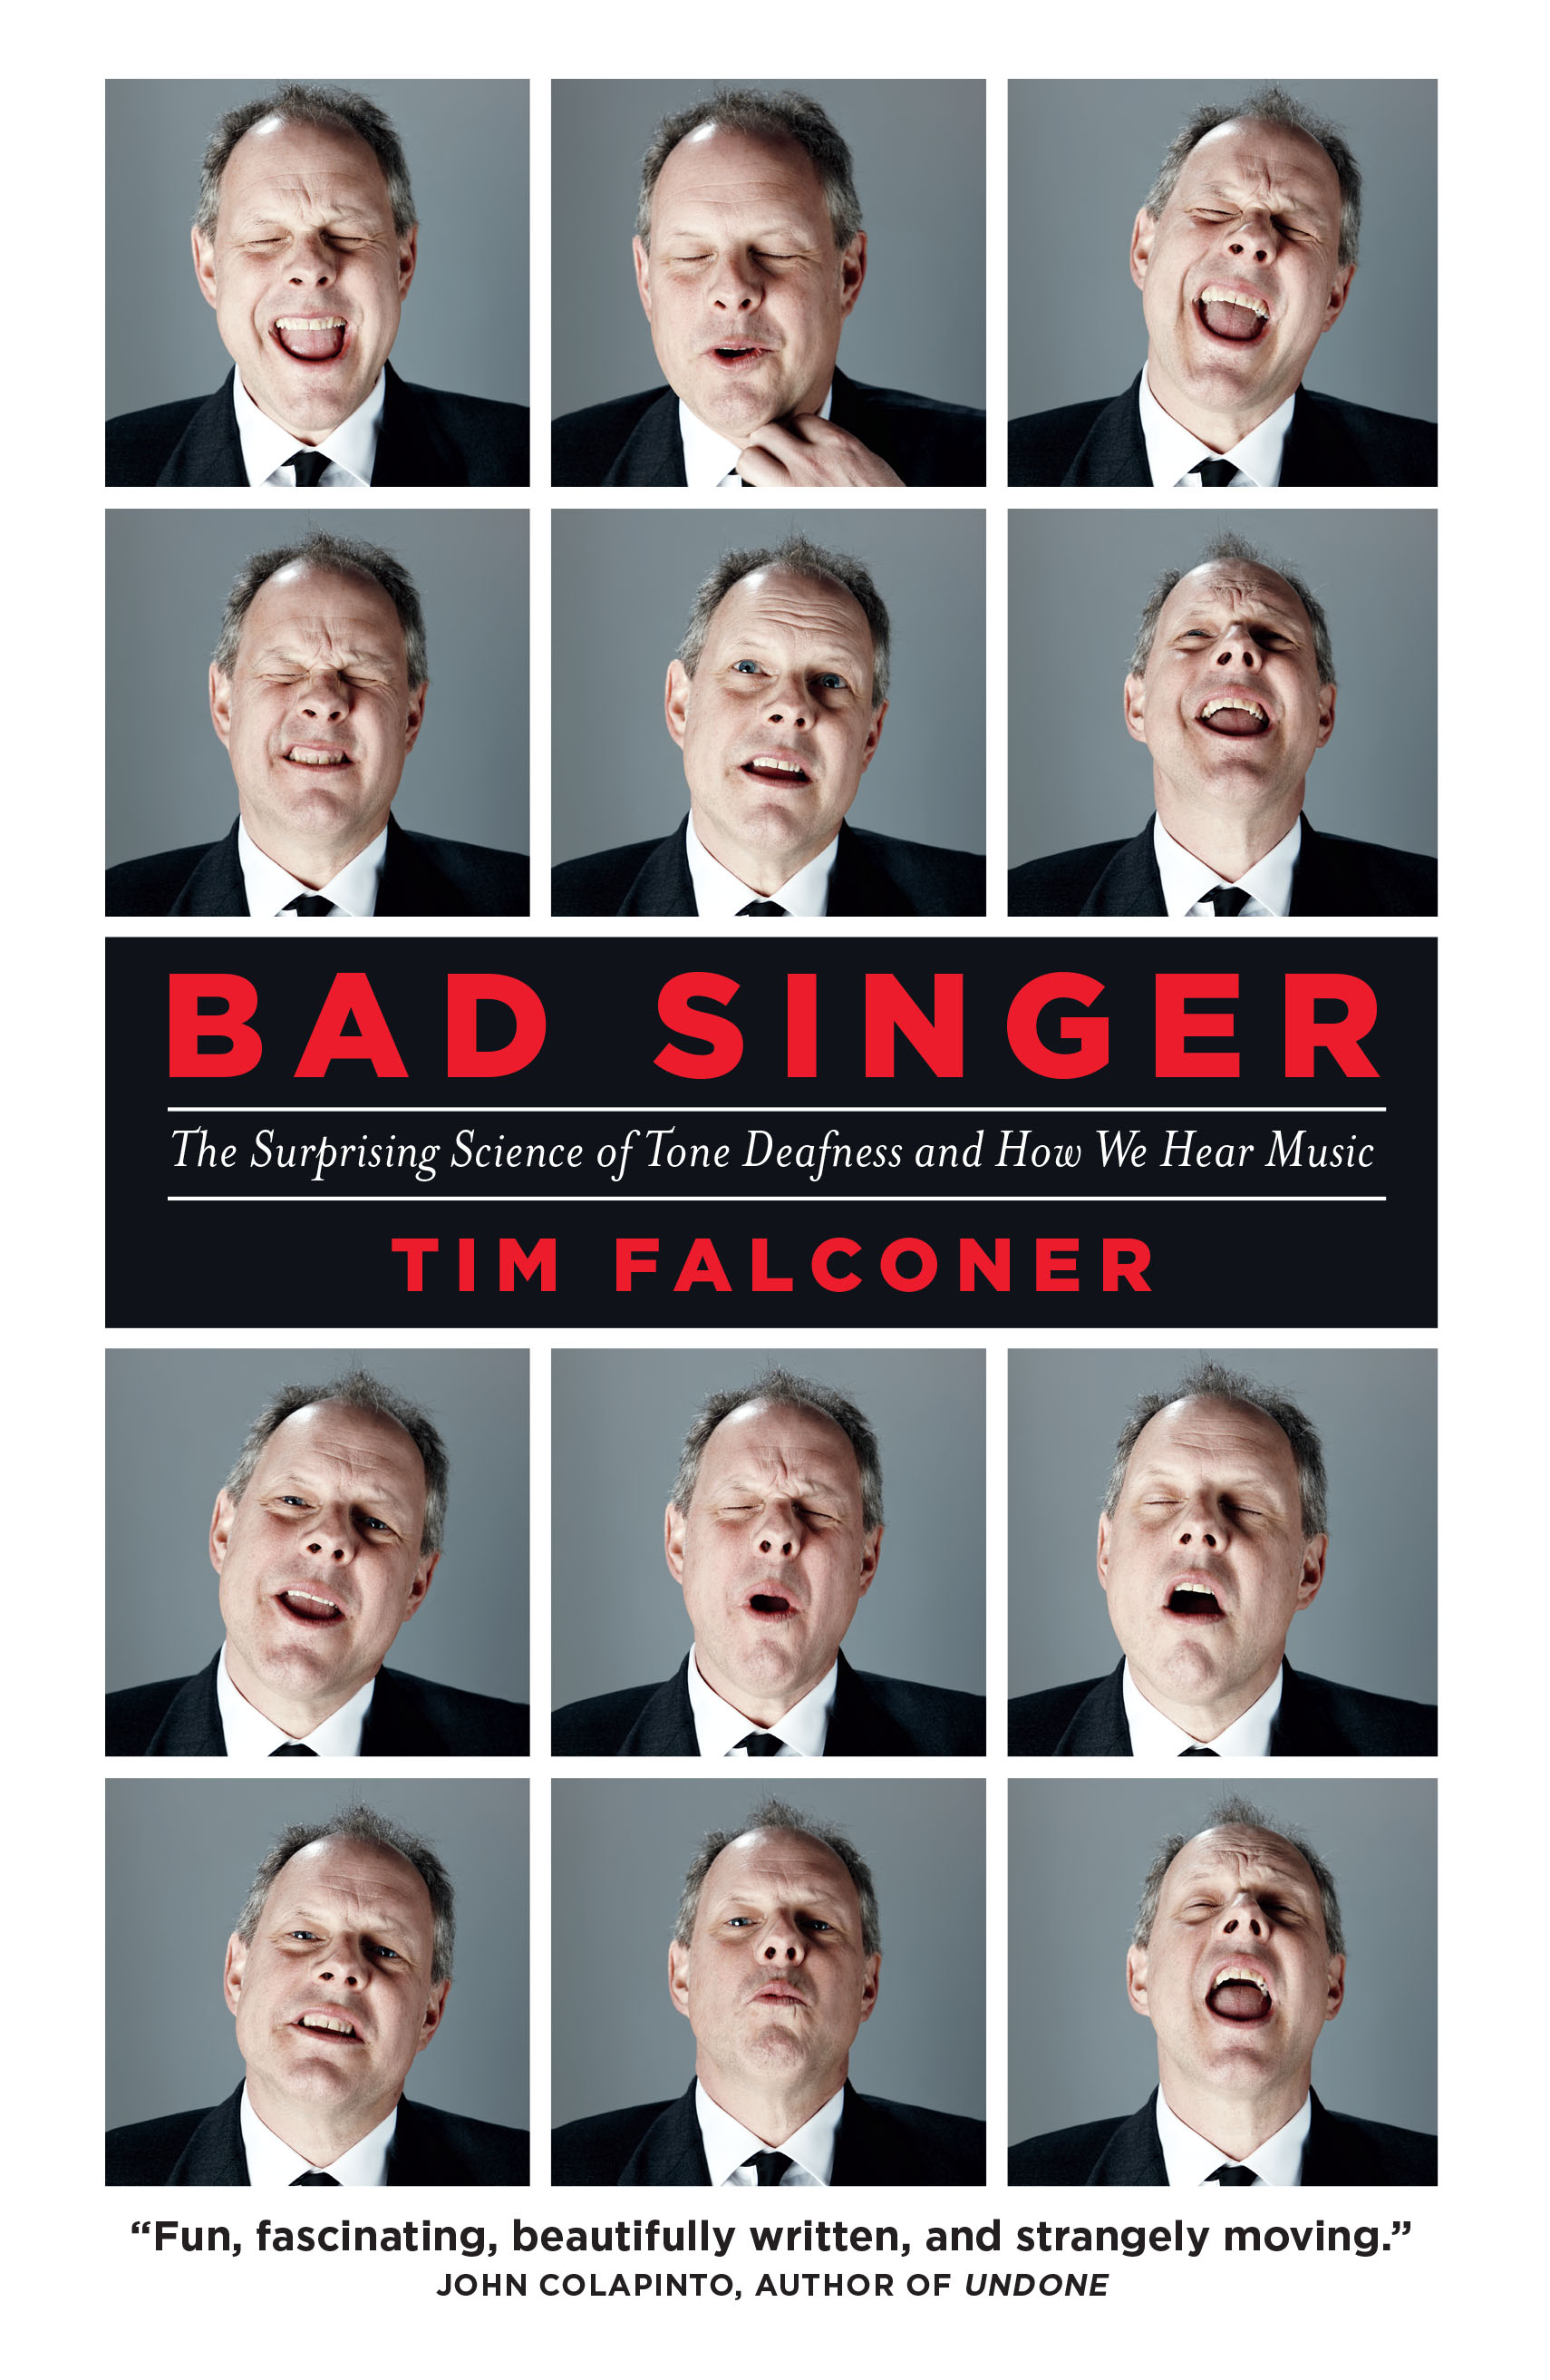 Bad Singer by Tim Falconer